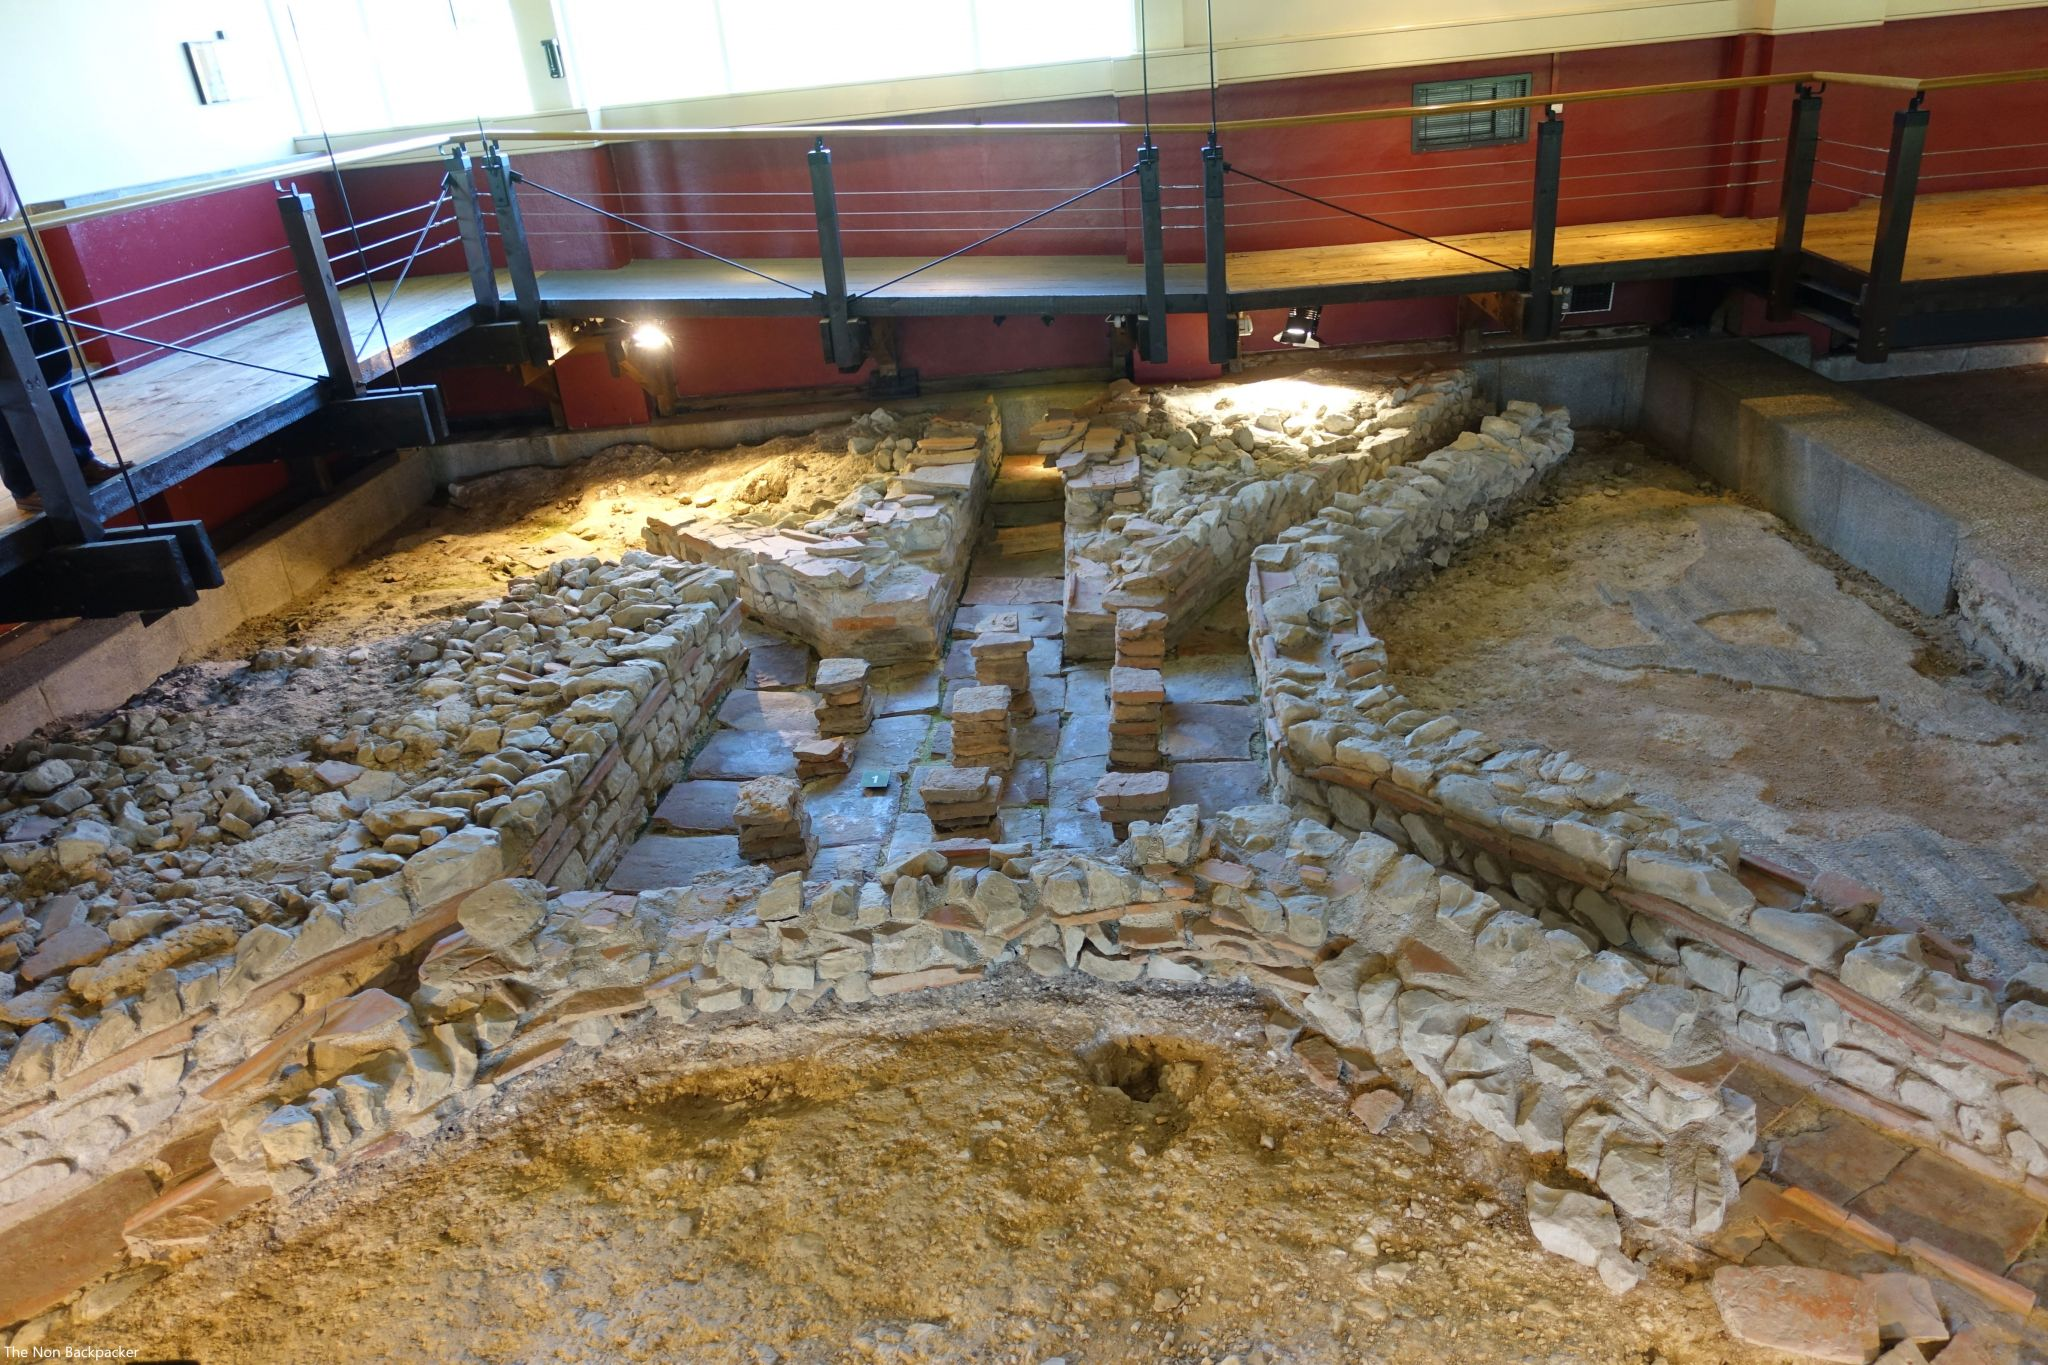 Roman underfloor heating